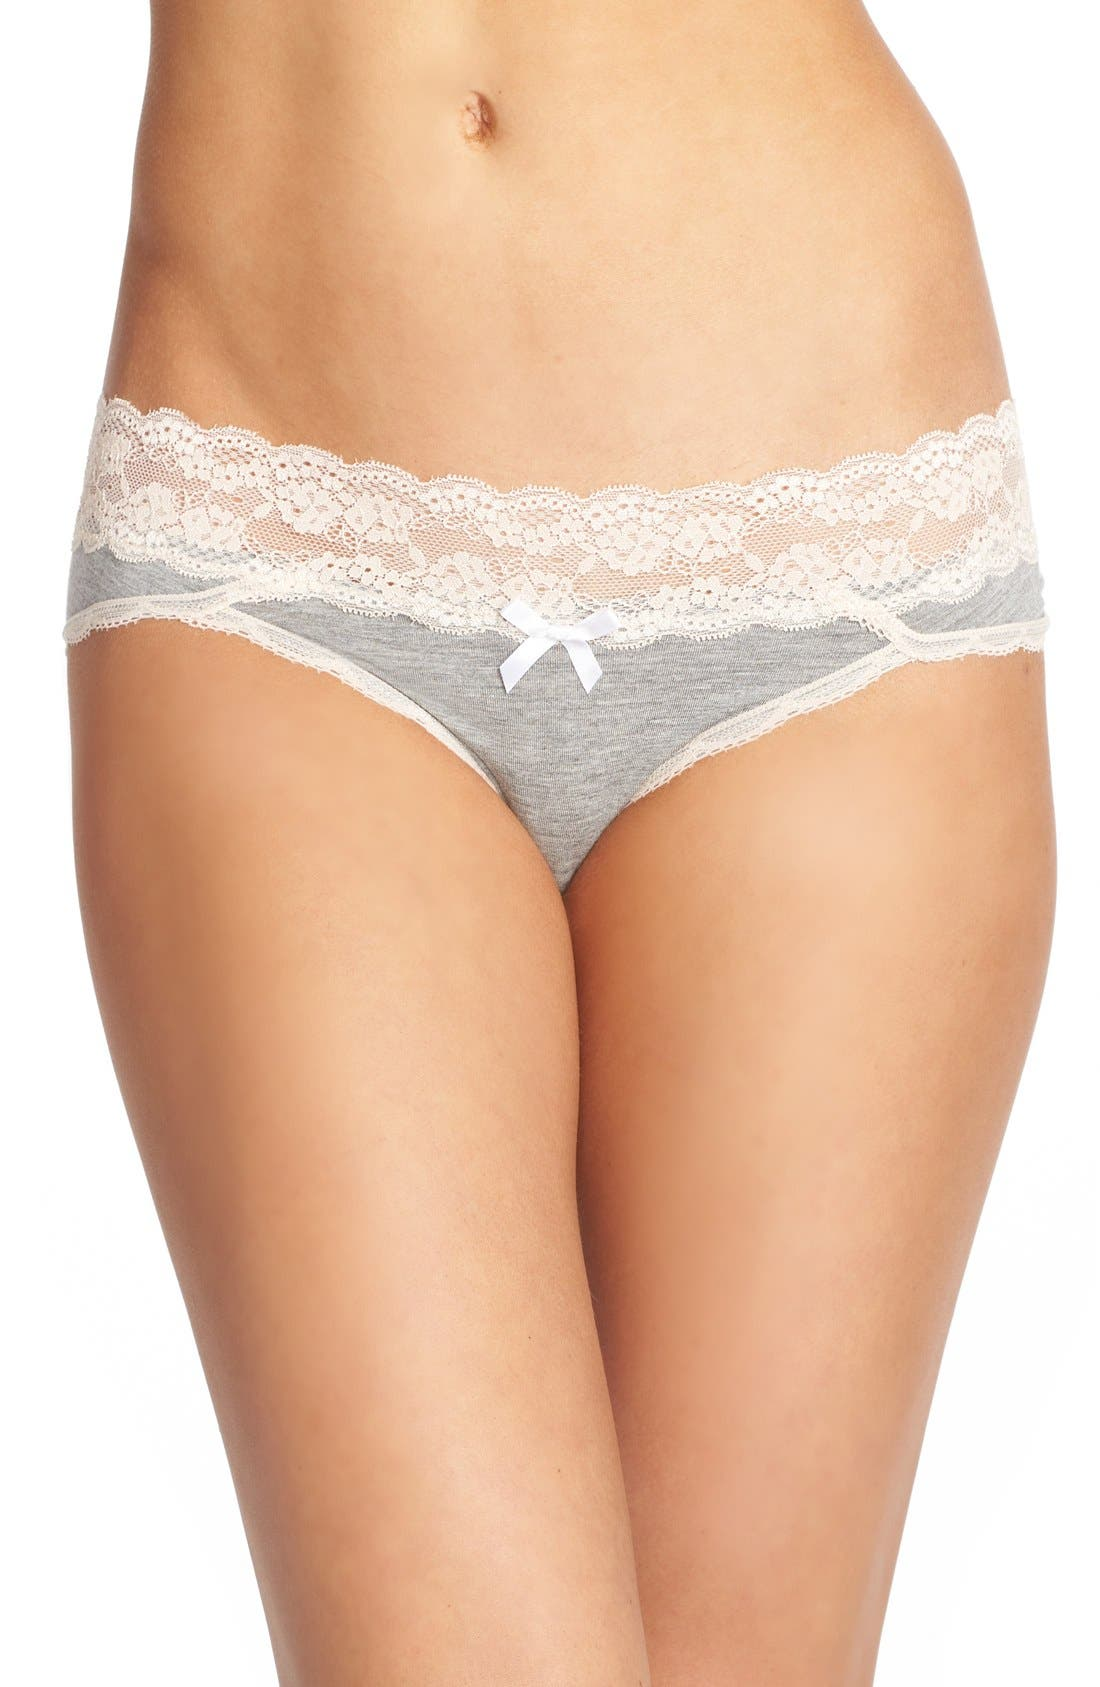 Honeydew Intimates Lace Waistband Hipster Panties (4 for $30)